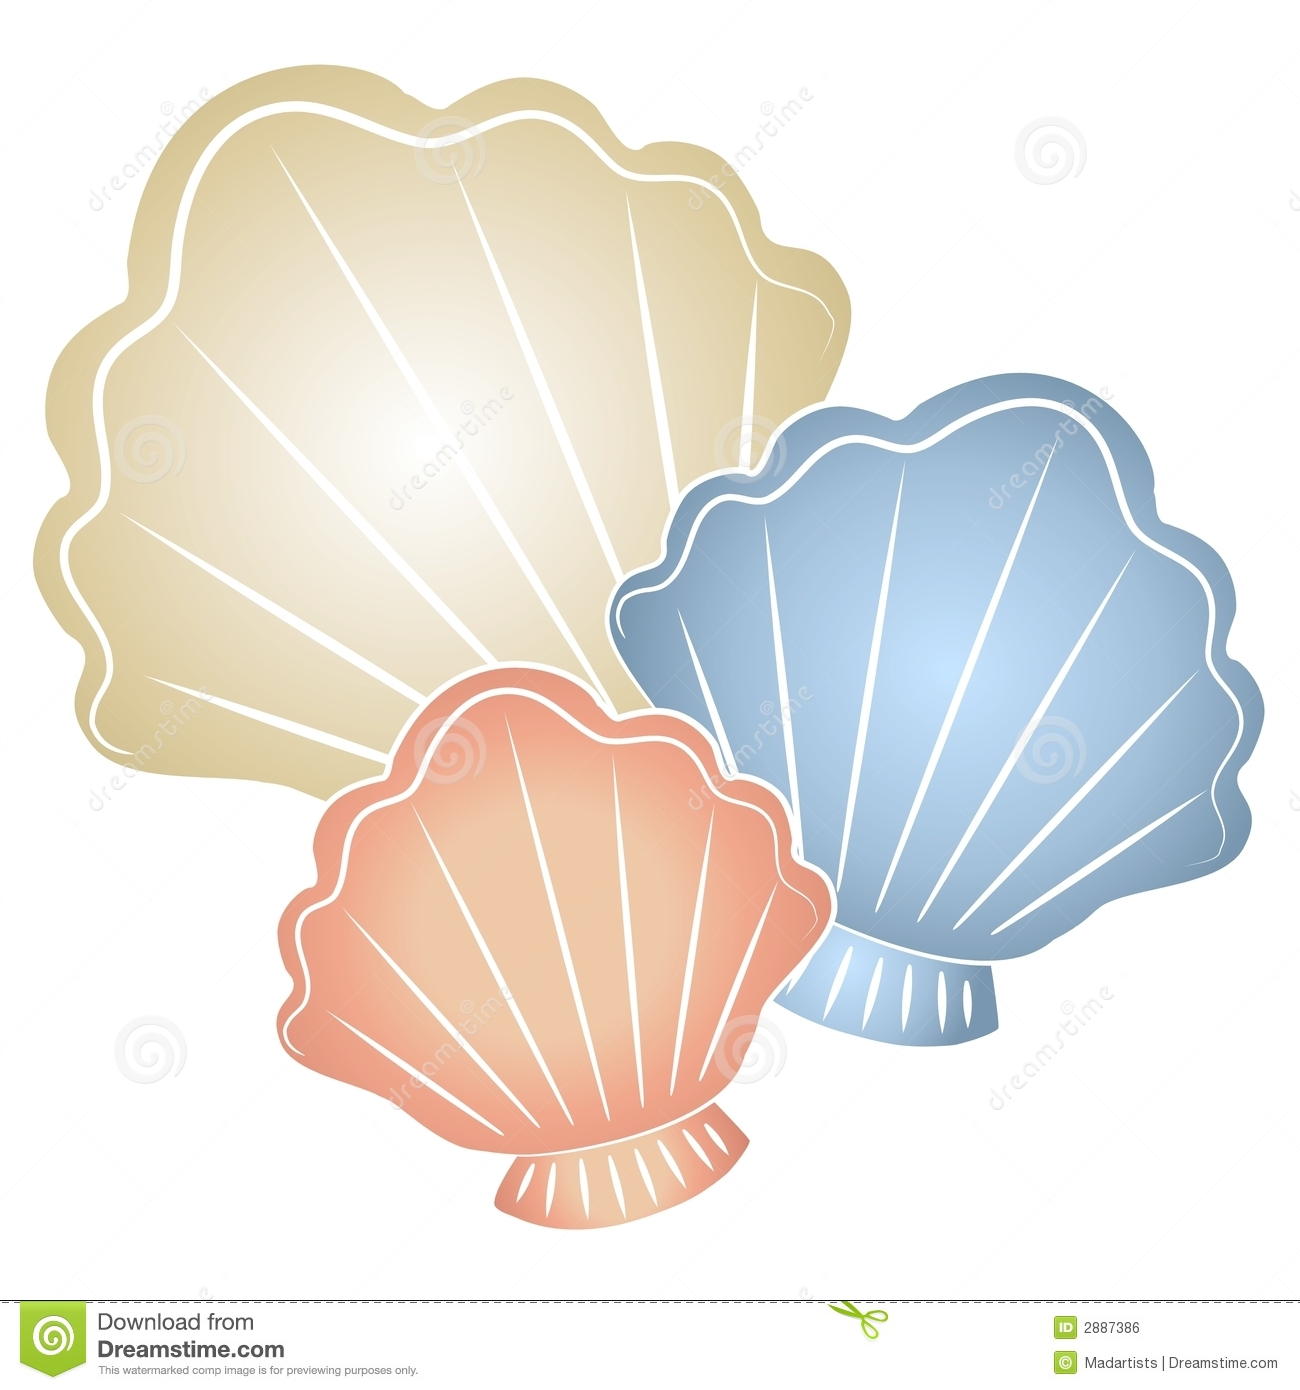 Seashells clipart 20 free Cliparts | Download images on ...